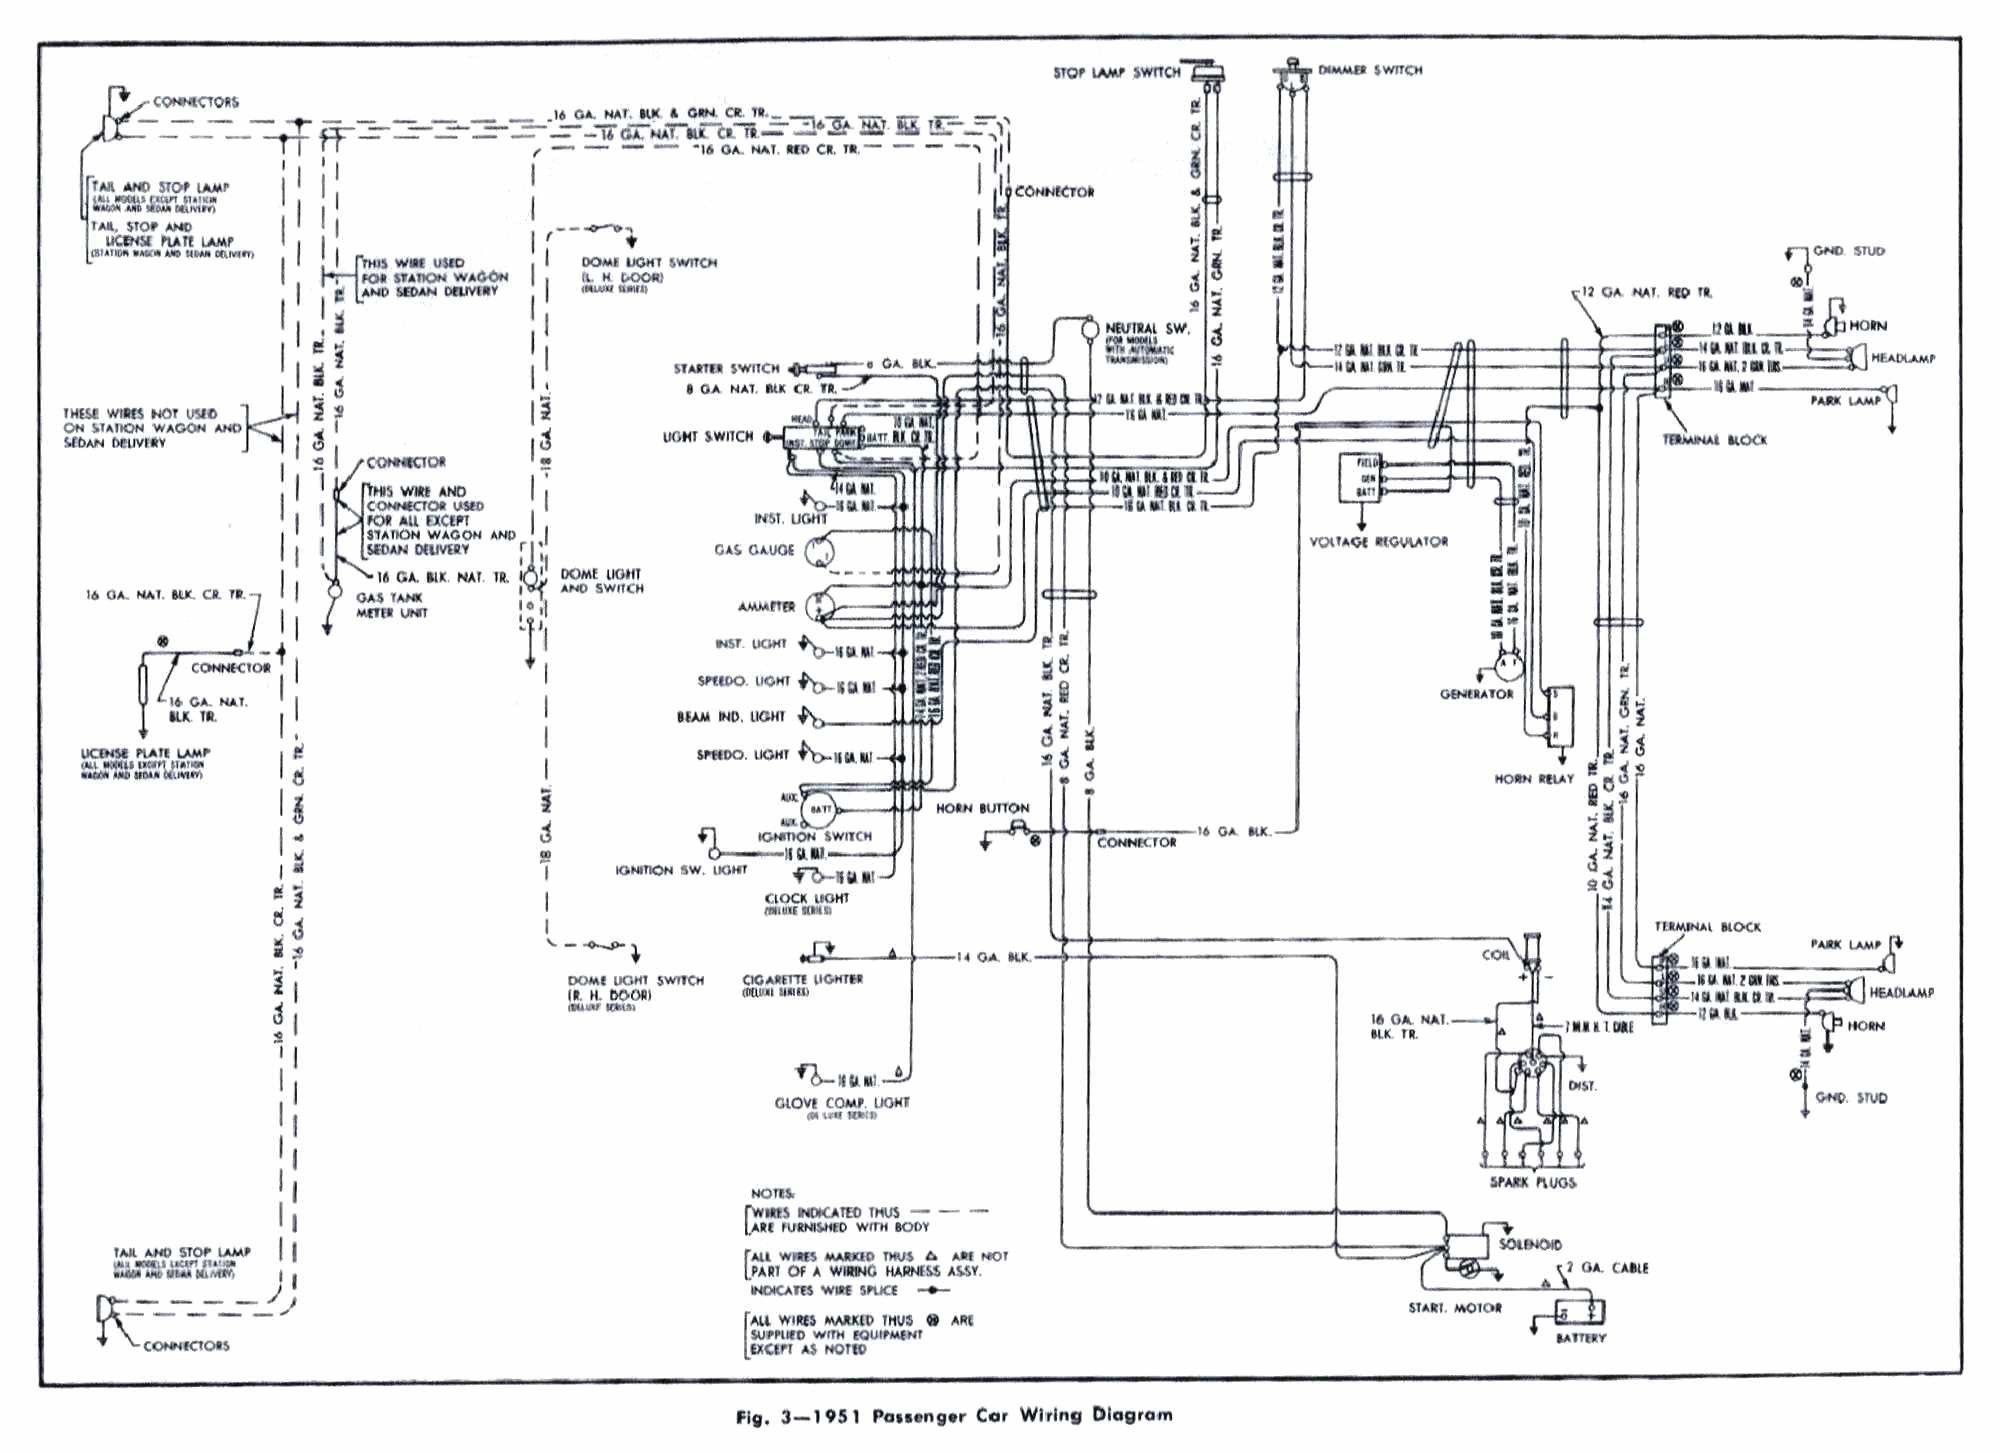 awesome 1981 chevrolet truck wiring diagram gallery